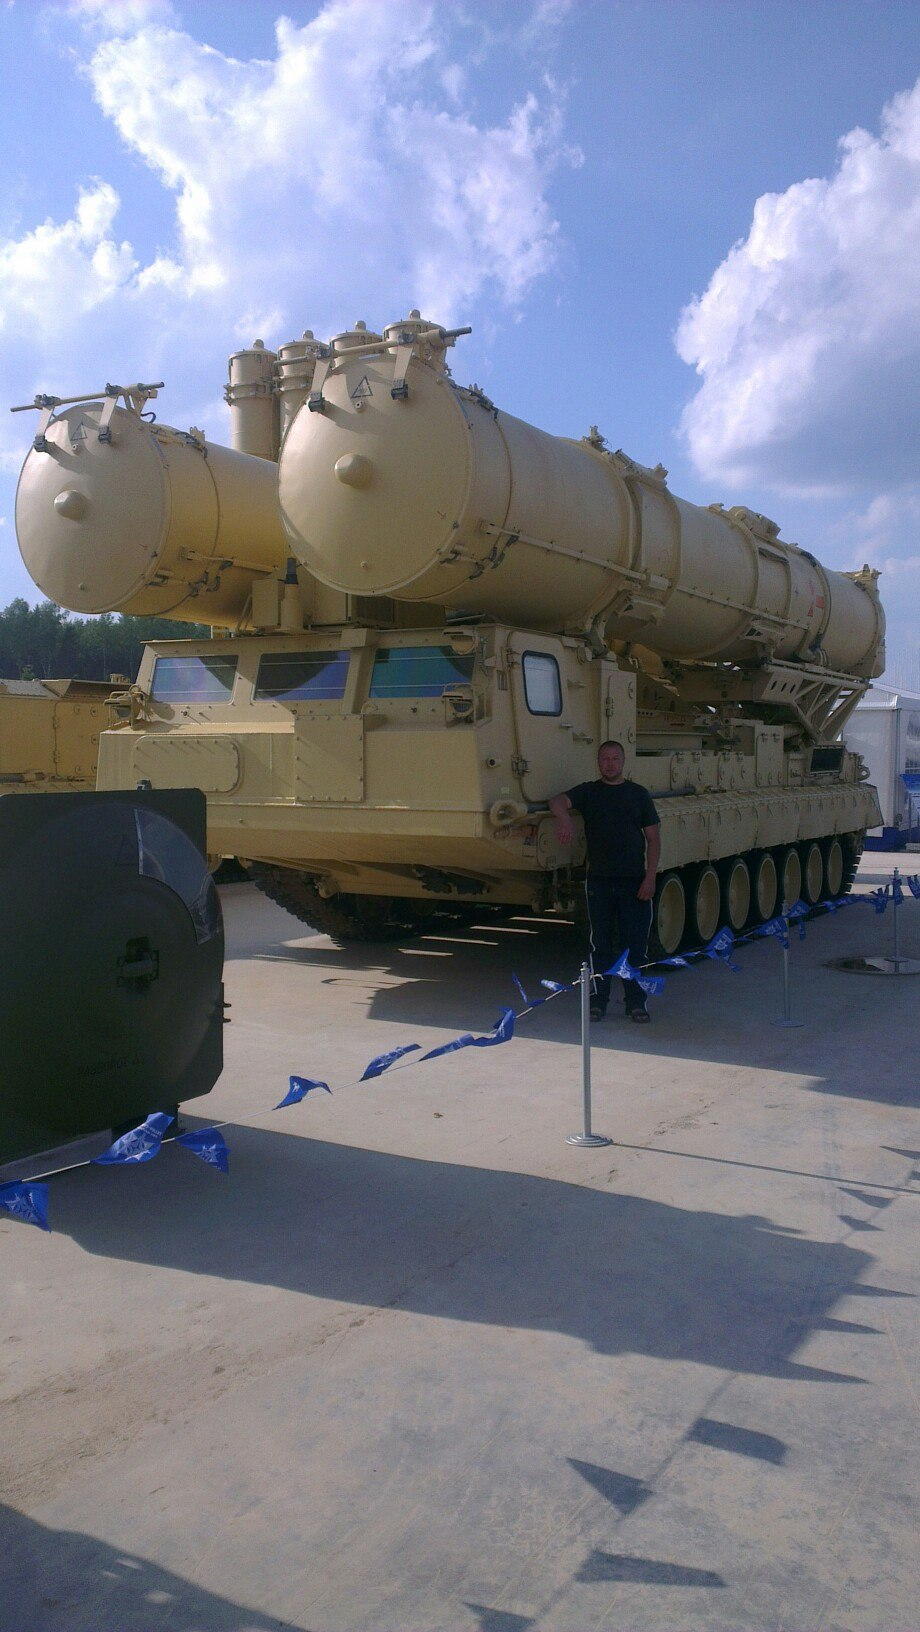 Egyptian Air Defense Forces - Page 3 0LkN2h3pB3g